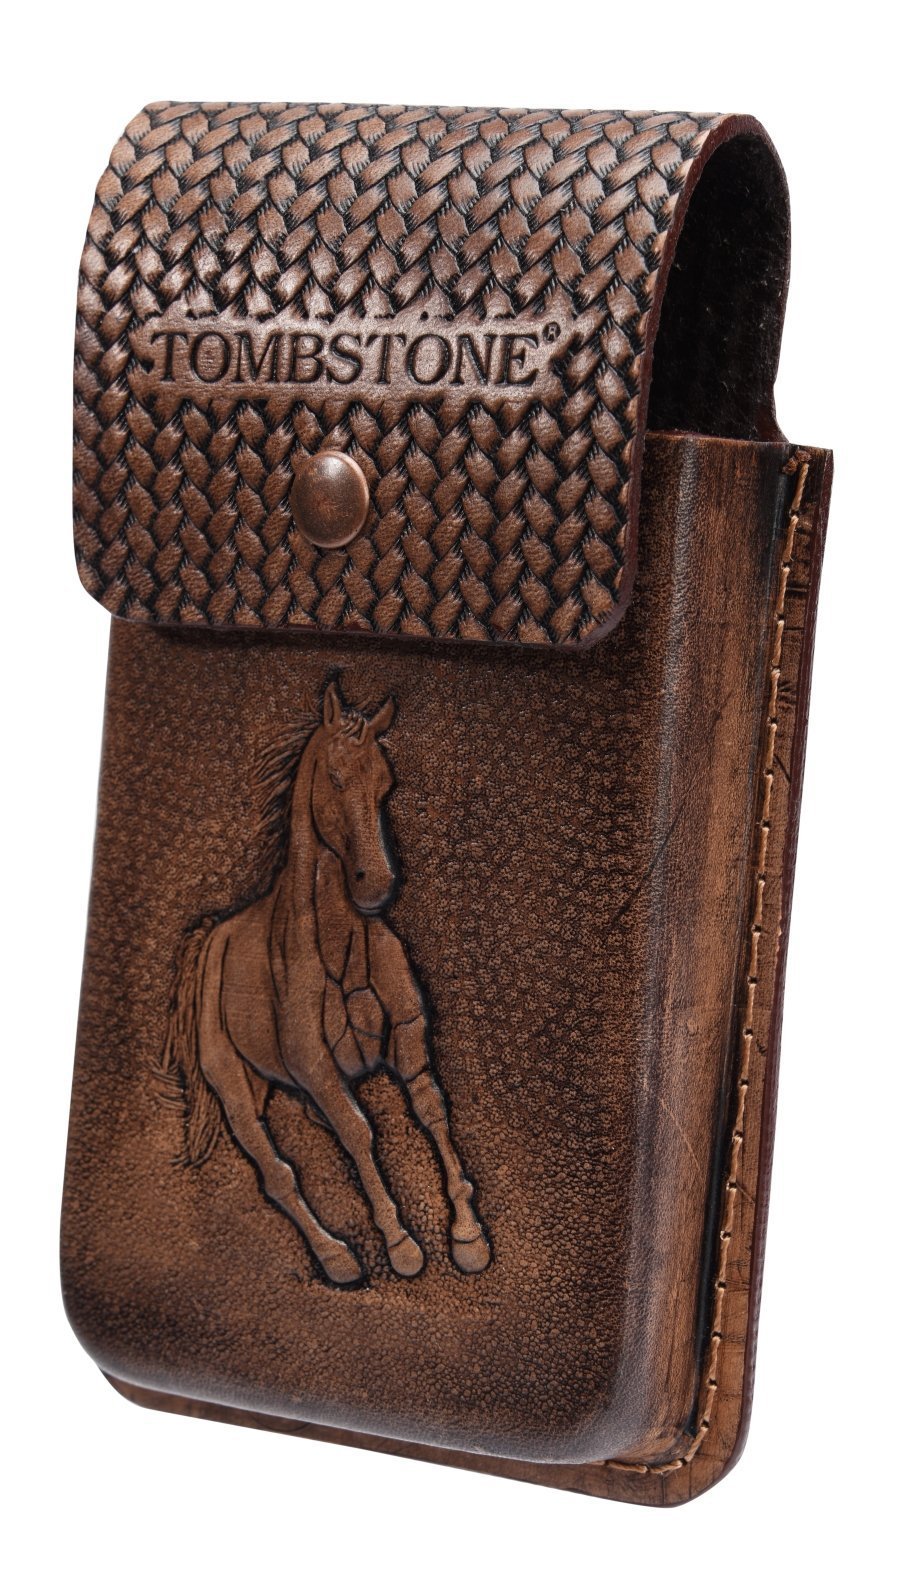 Tombstone Cellphone Case #4325